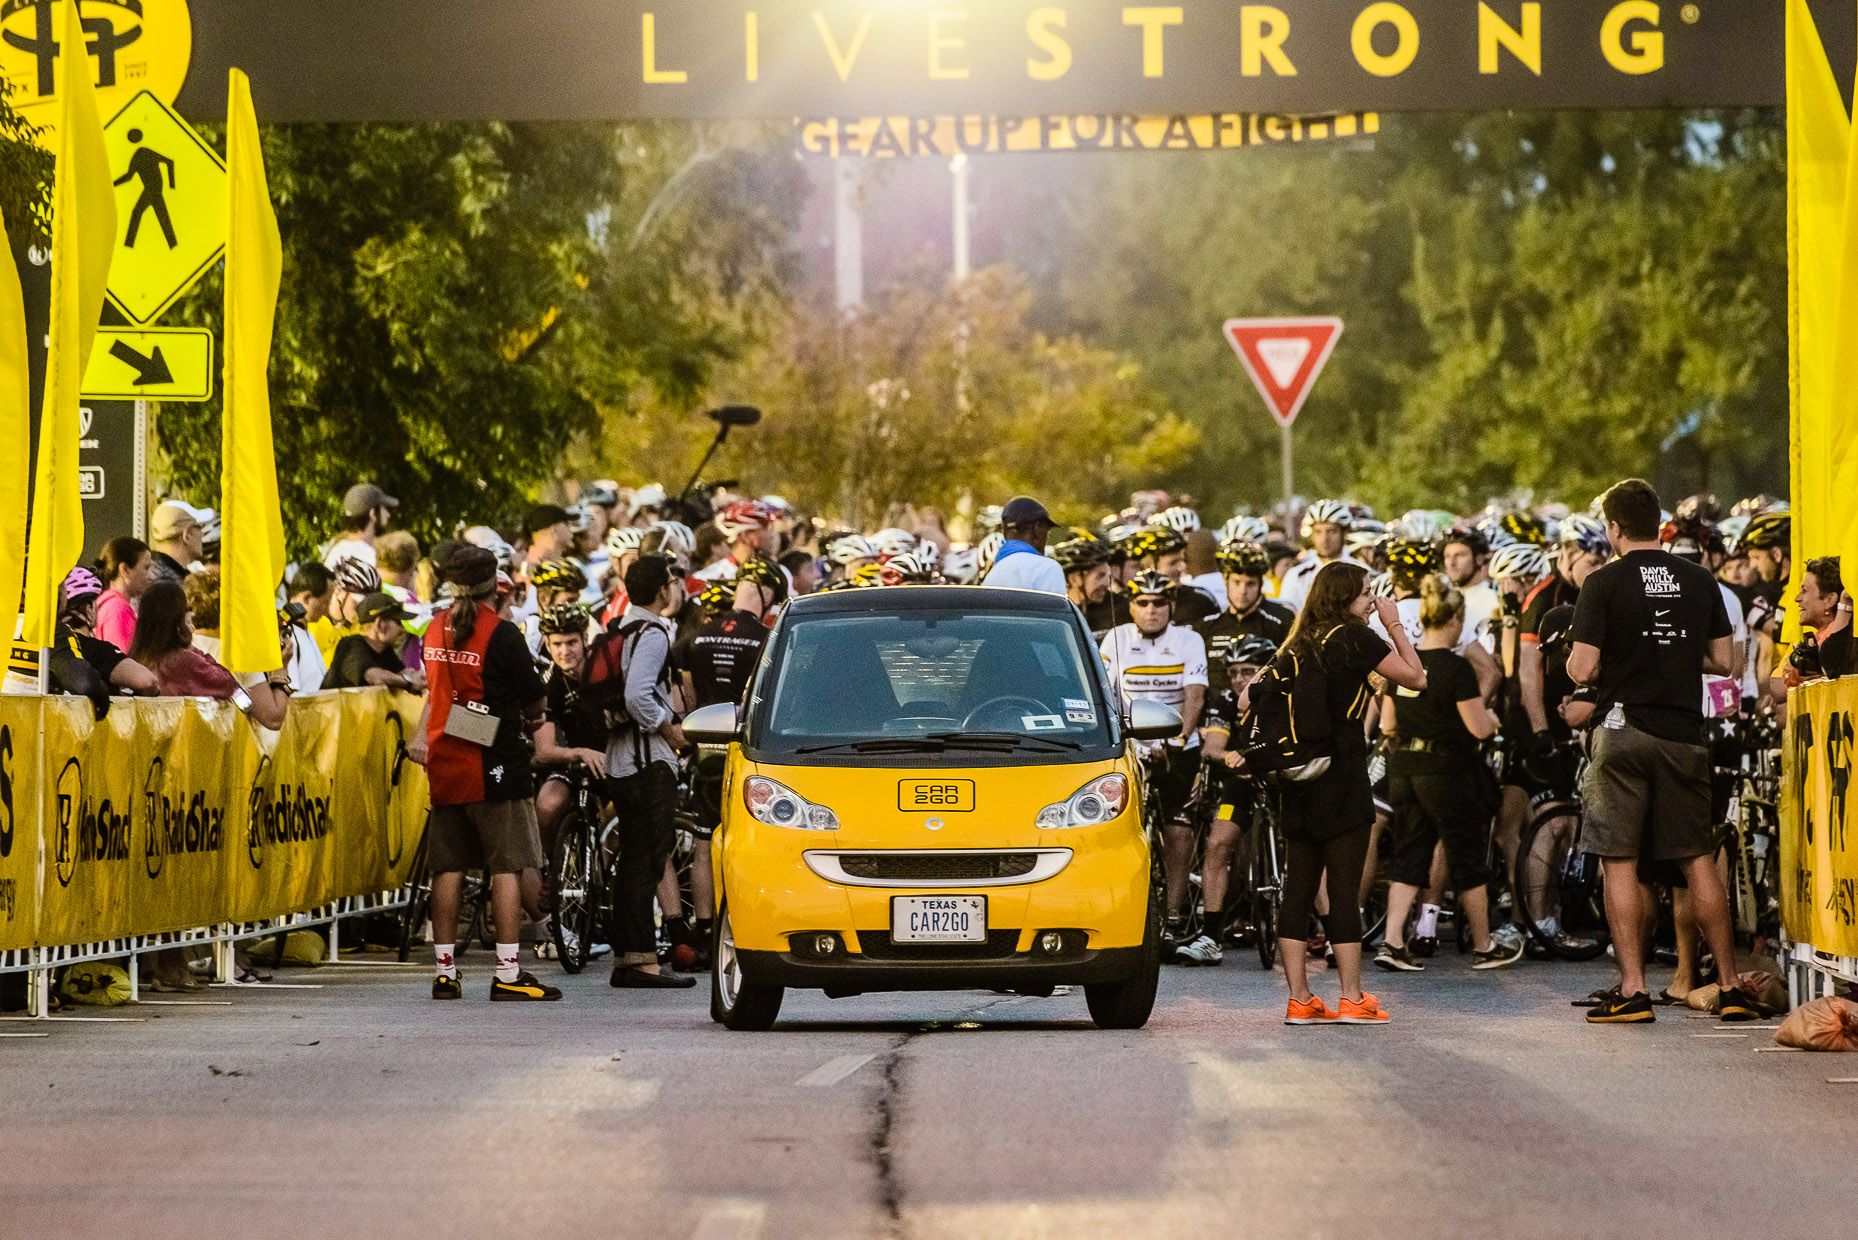 Livestrong-Austin-Commercial-Event-Photographer-Challenge-car2go.jpg